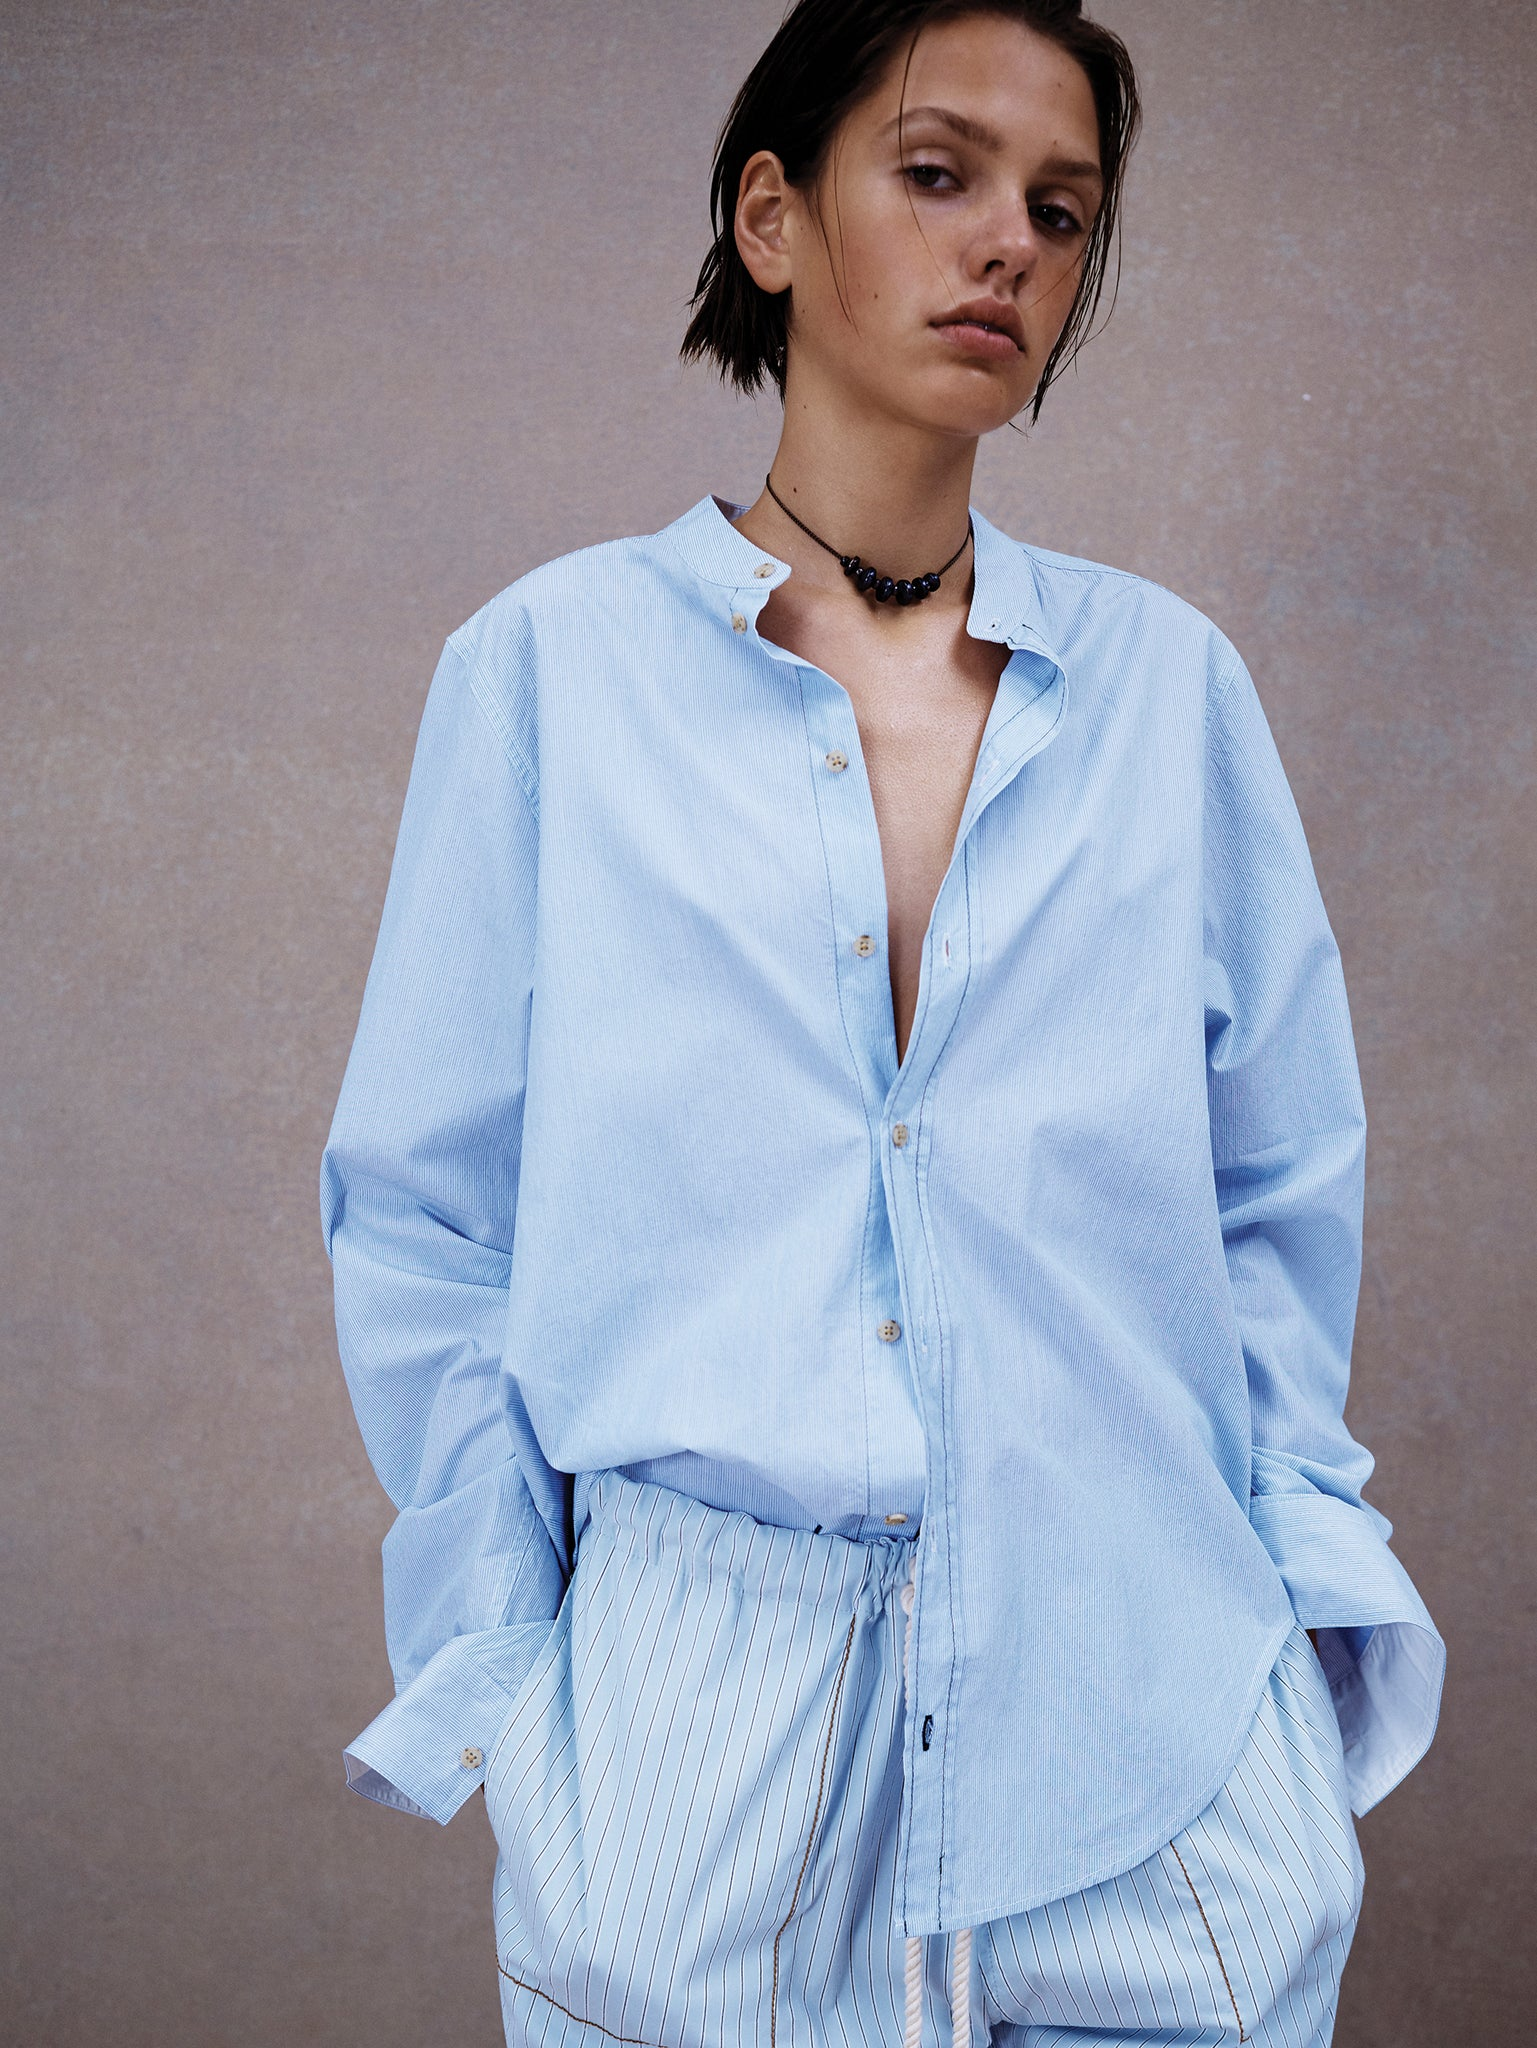 resort 20 capsule look 7